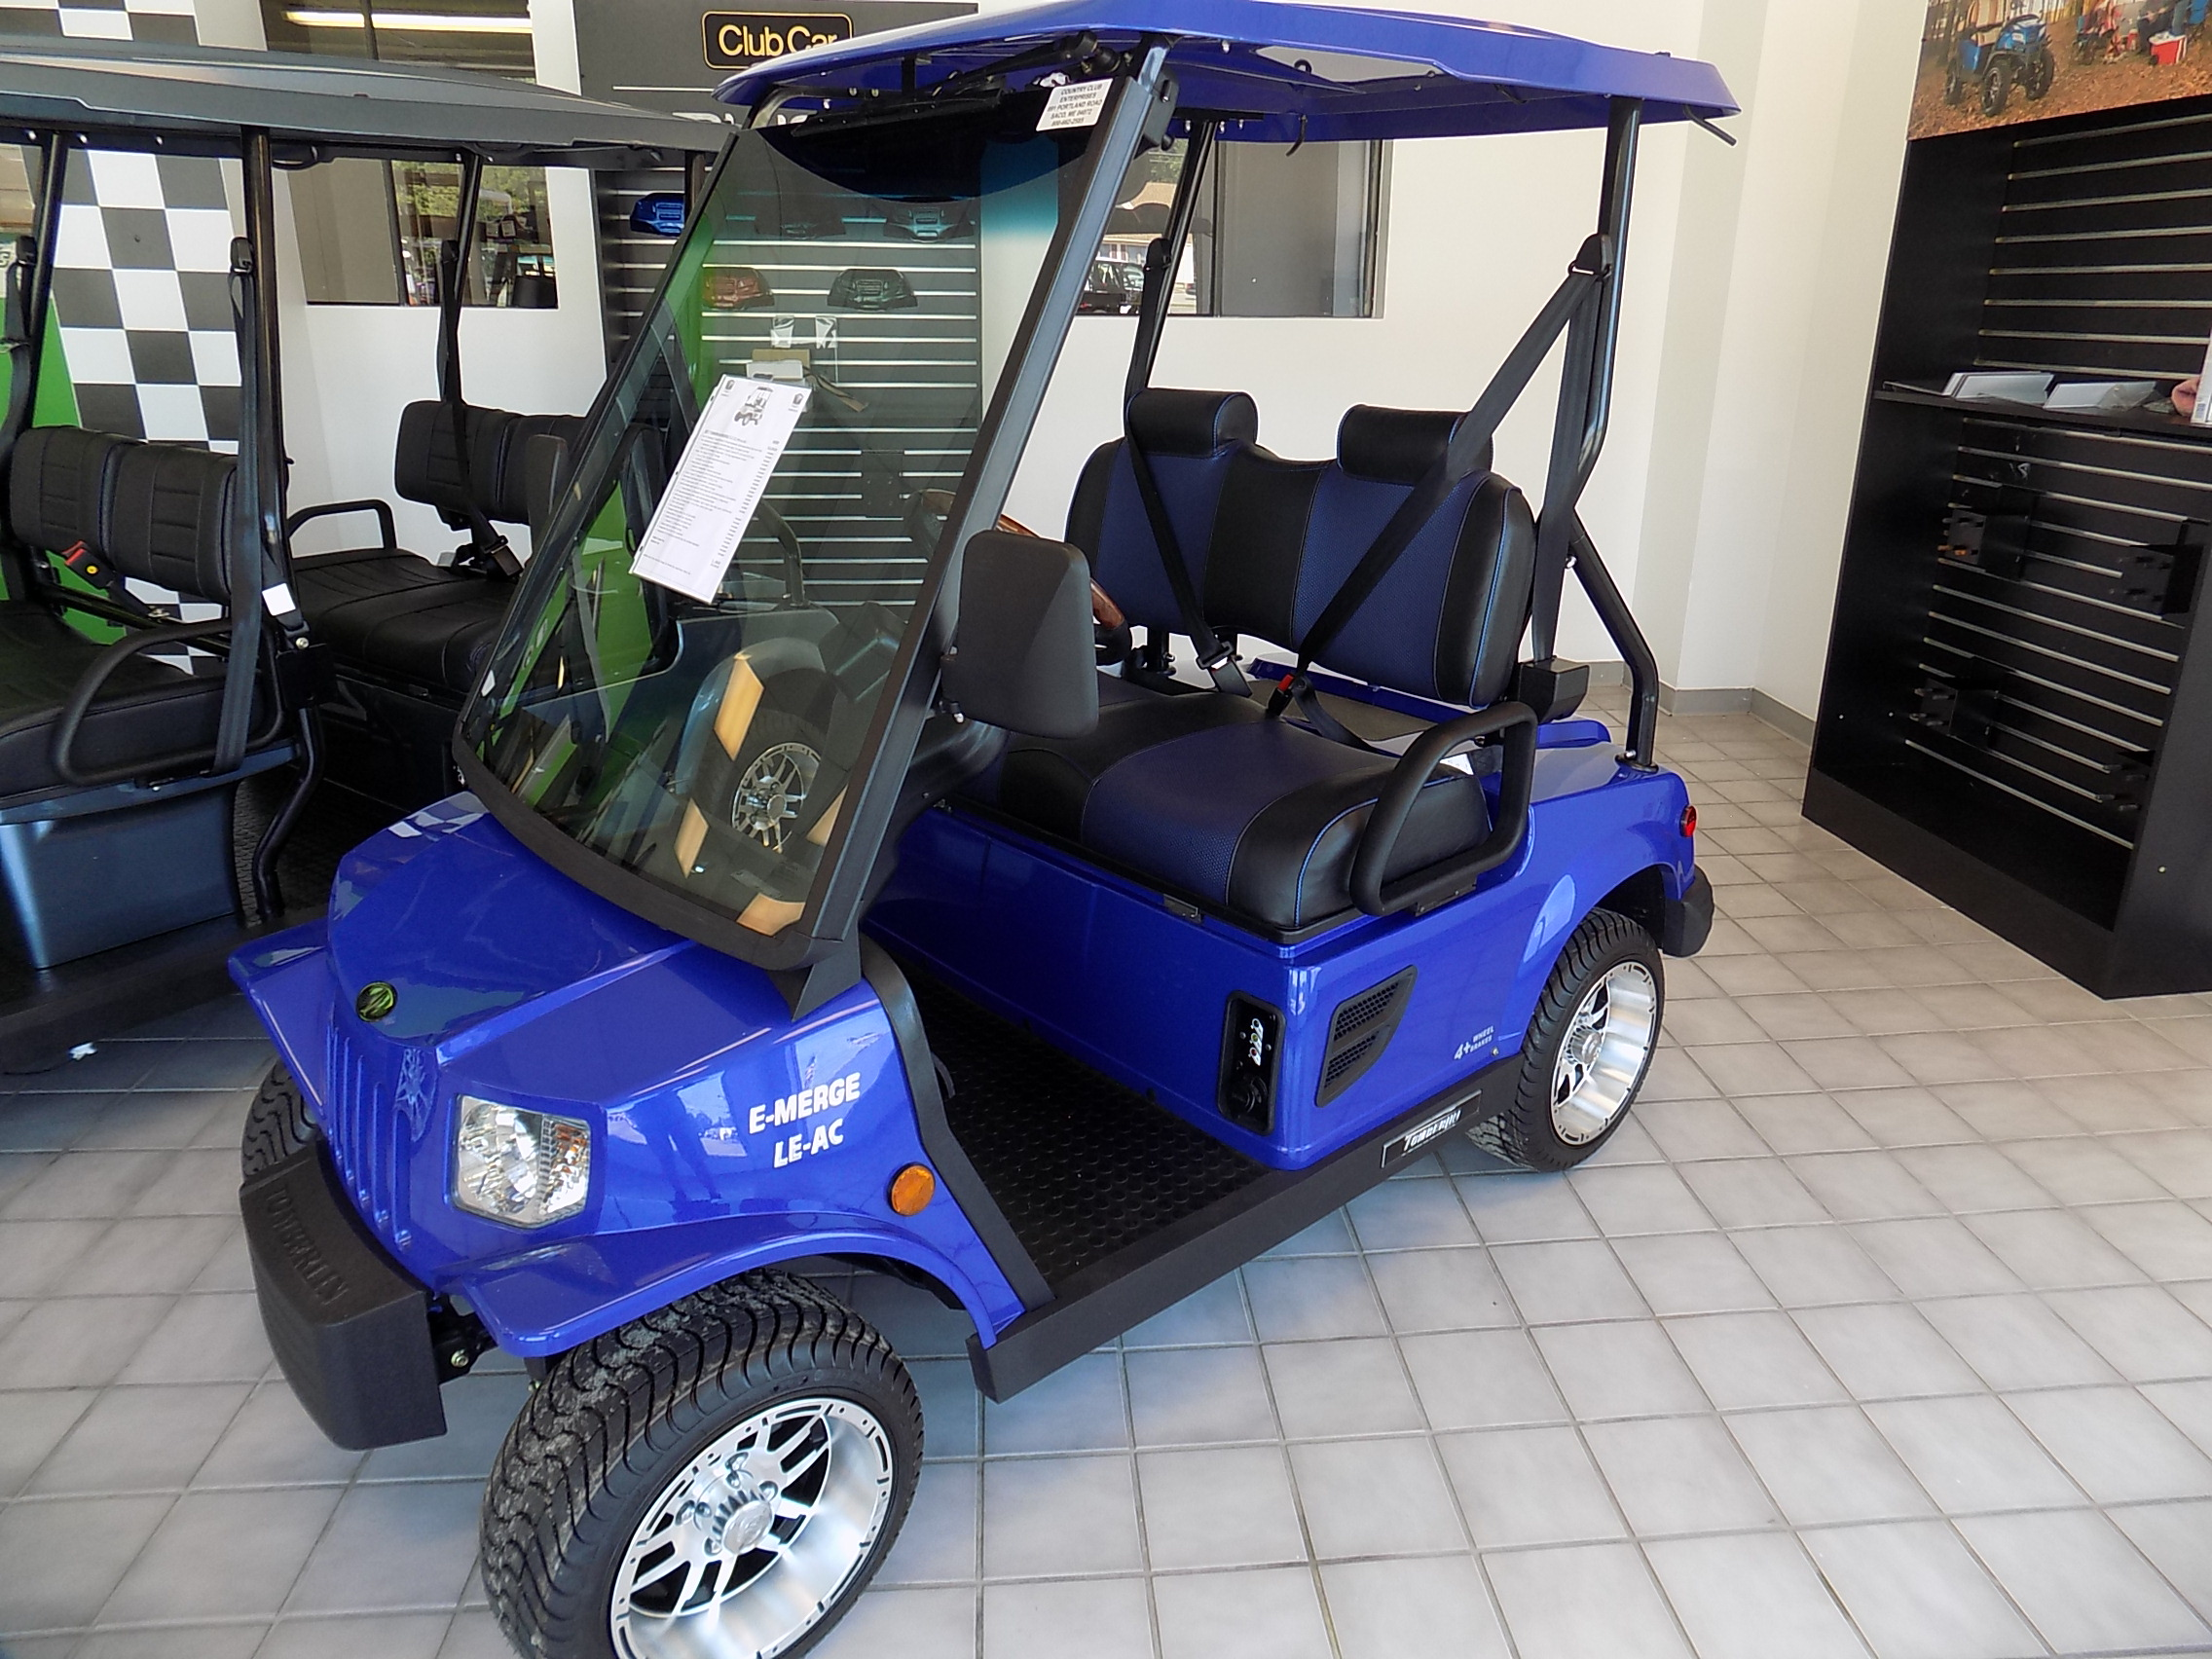 medium resolution of new 2017 street legal tomberlin emerge e2 le lsv with full new car warranty cce golf cars